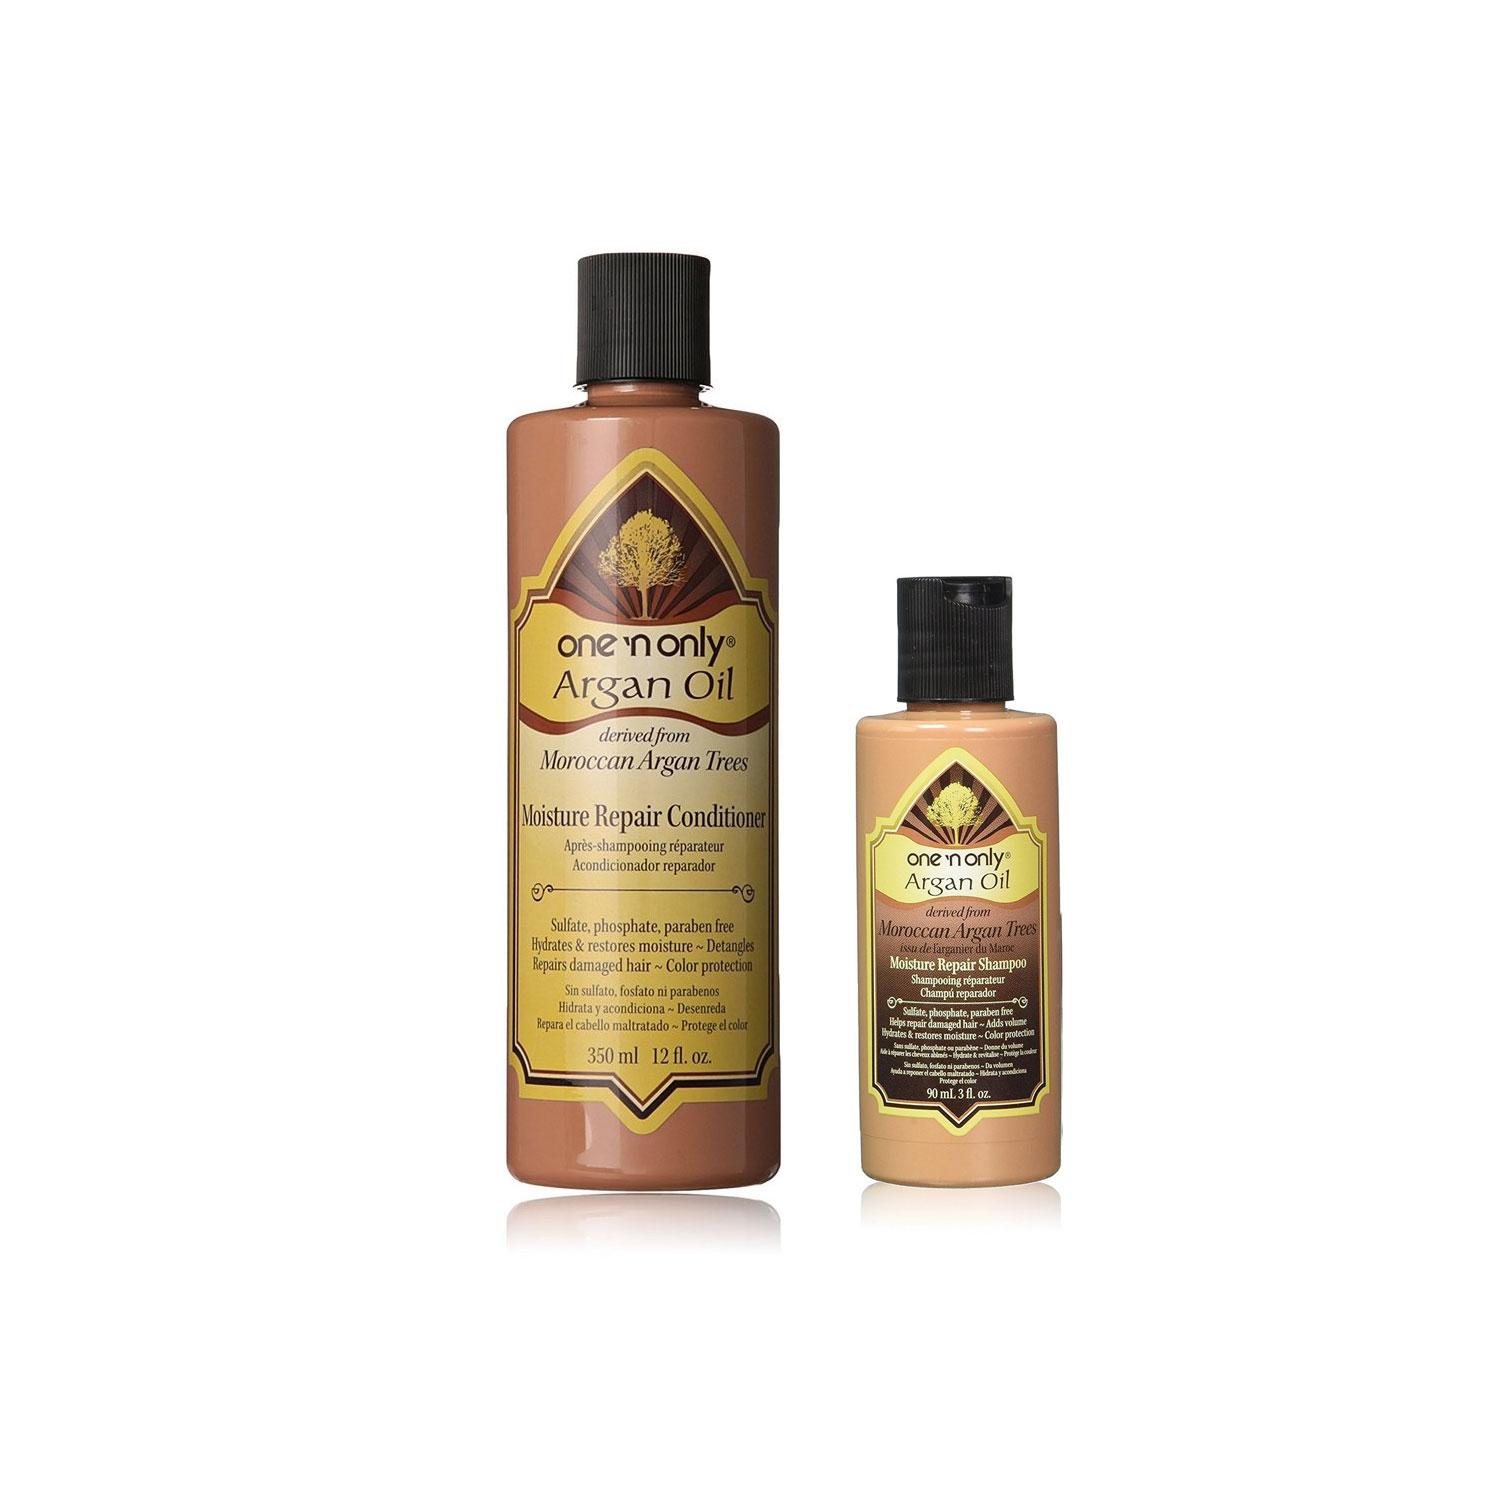 Image of One n Only Argan Oil Moisture Repair Conditioner 12oz & Shampoo 3oz